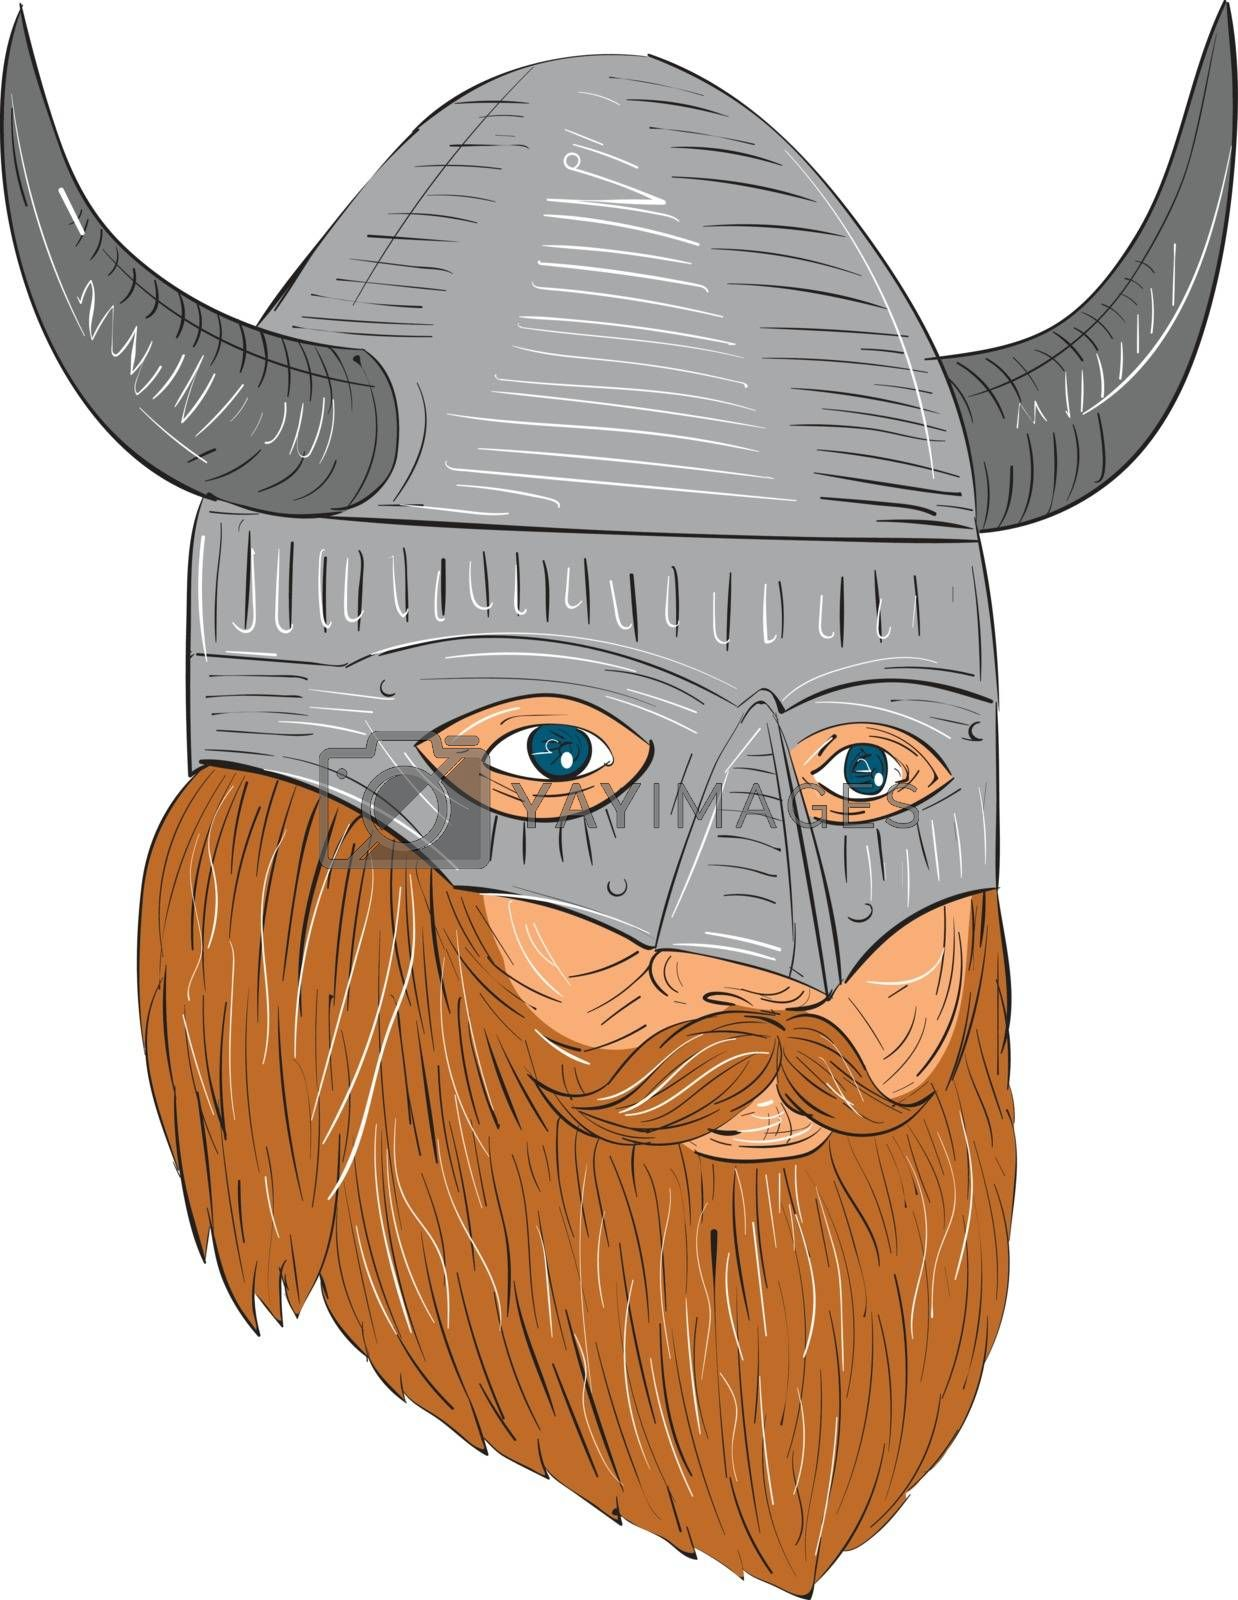 Drawing sketch style illustration of a norseman viking warrior raider barbarian head with beard wearing horned helmet looking slightly to the side set on isolated white background.